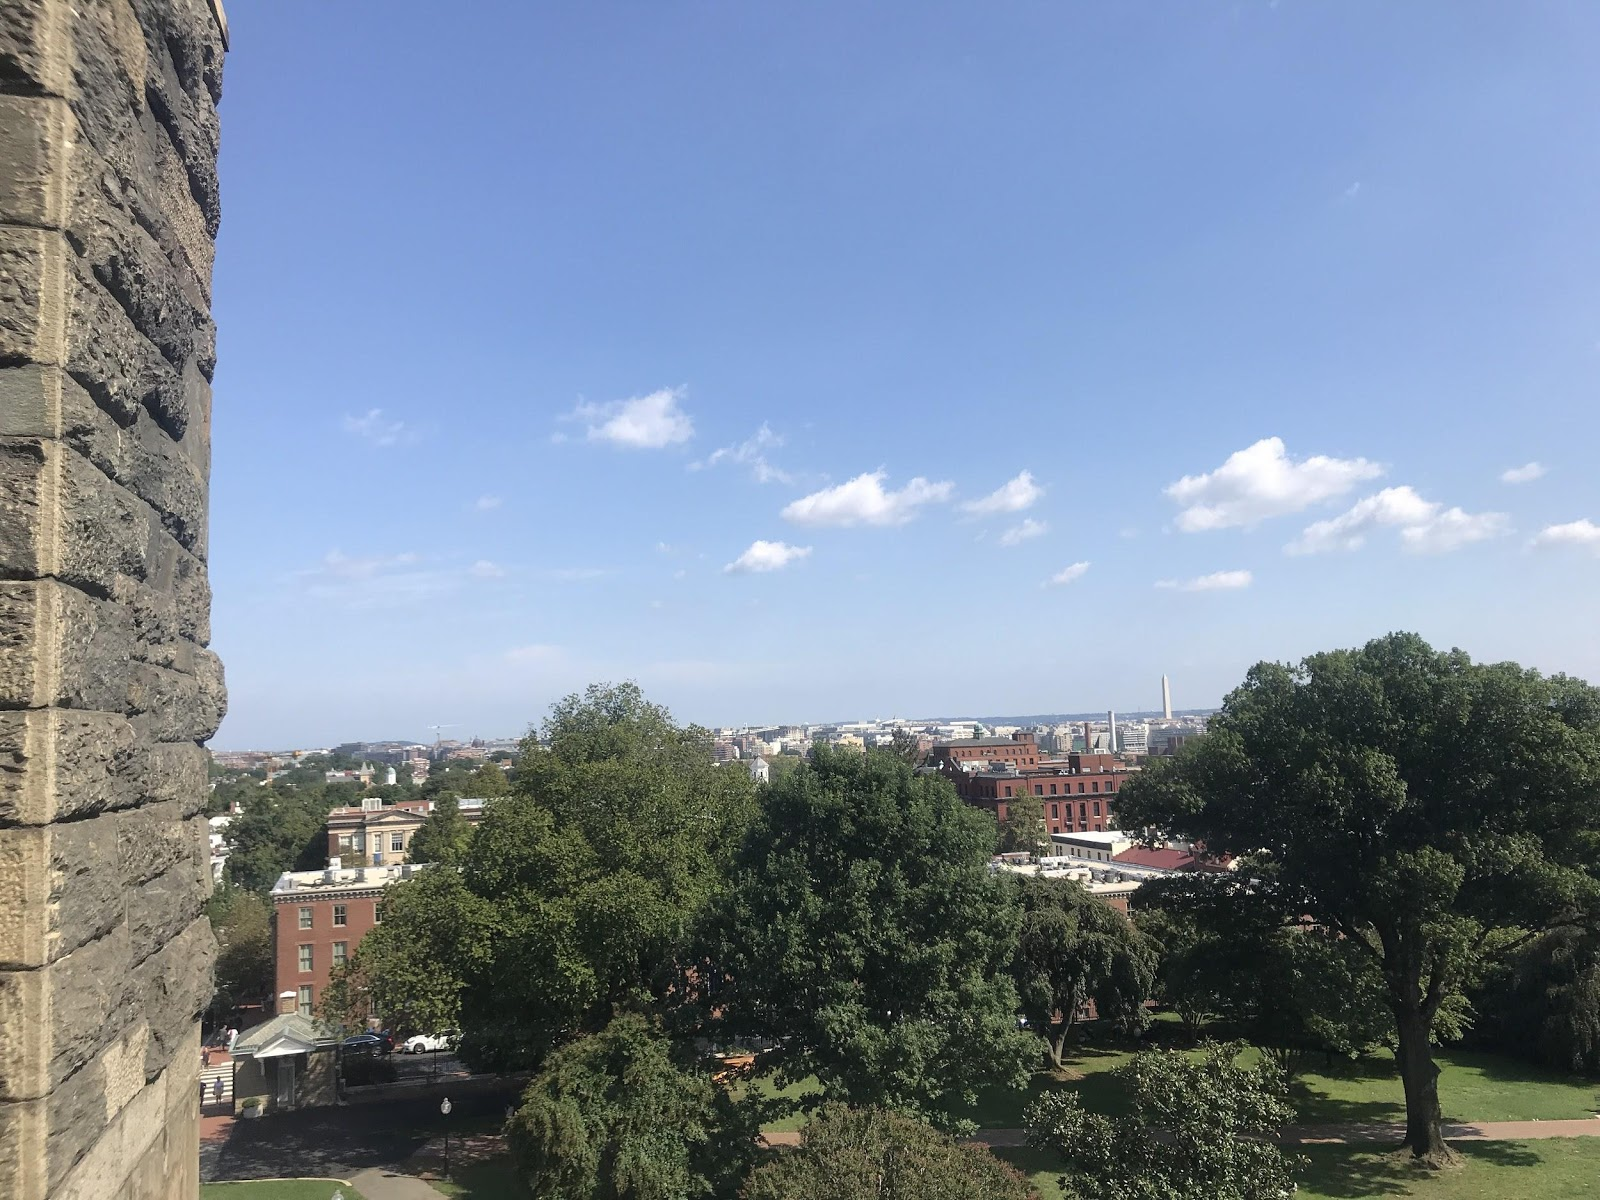 View of the neighborhood from Healy Clock Tower